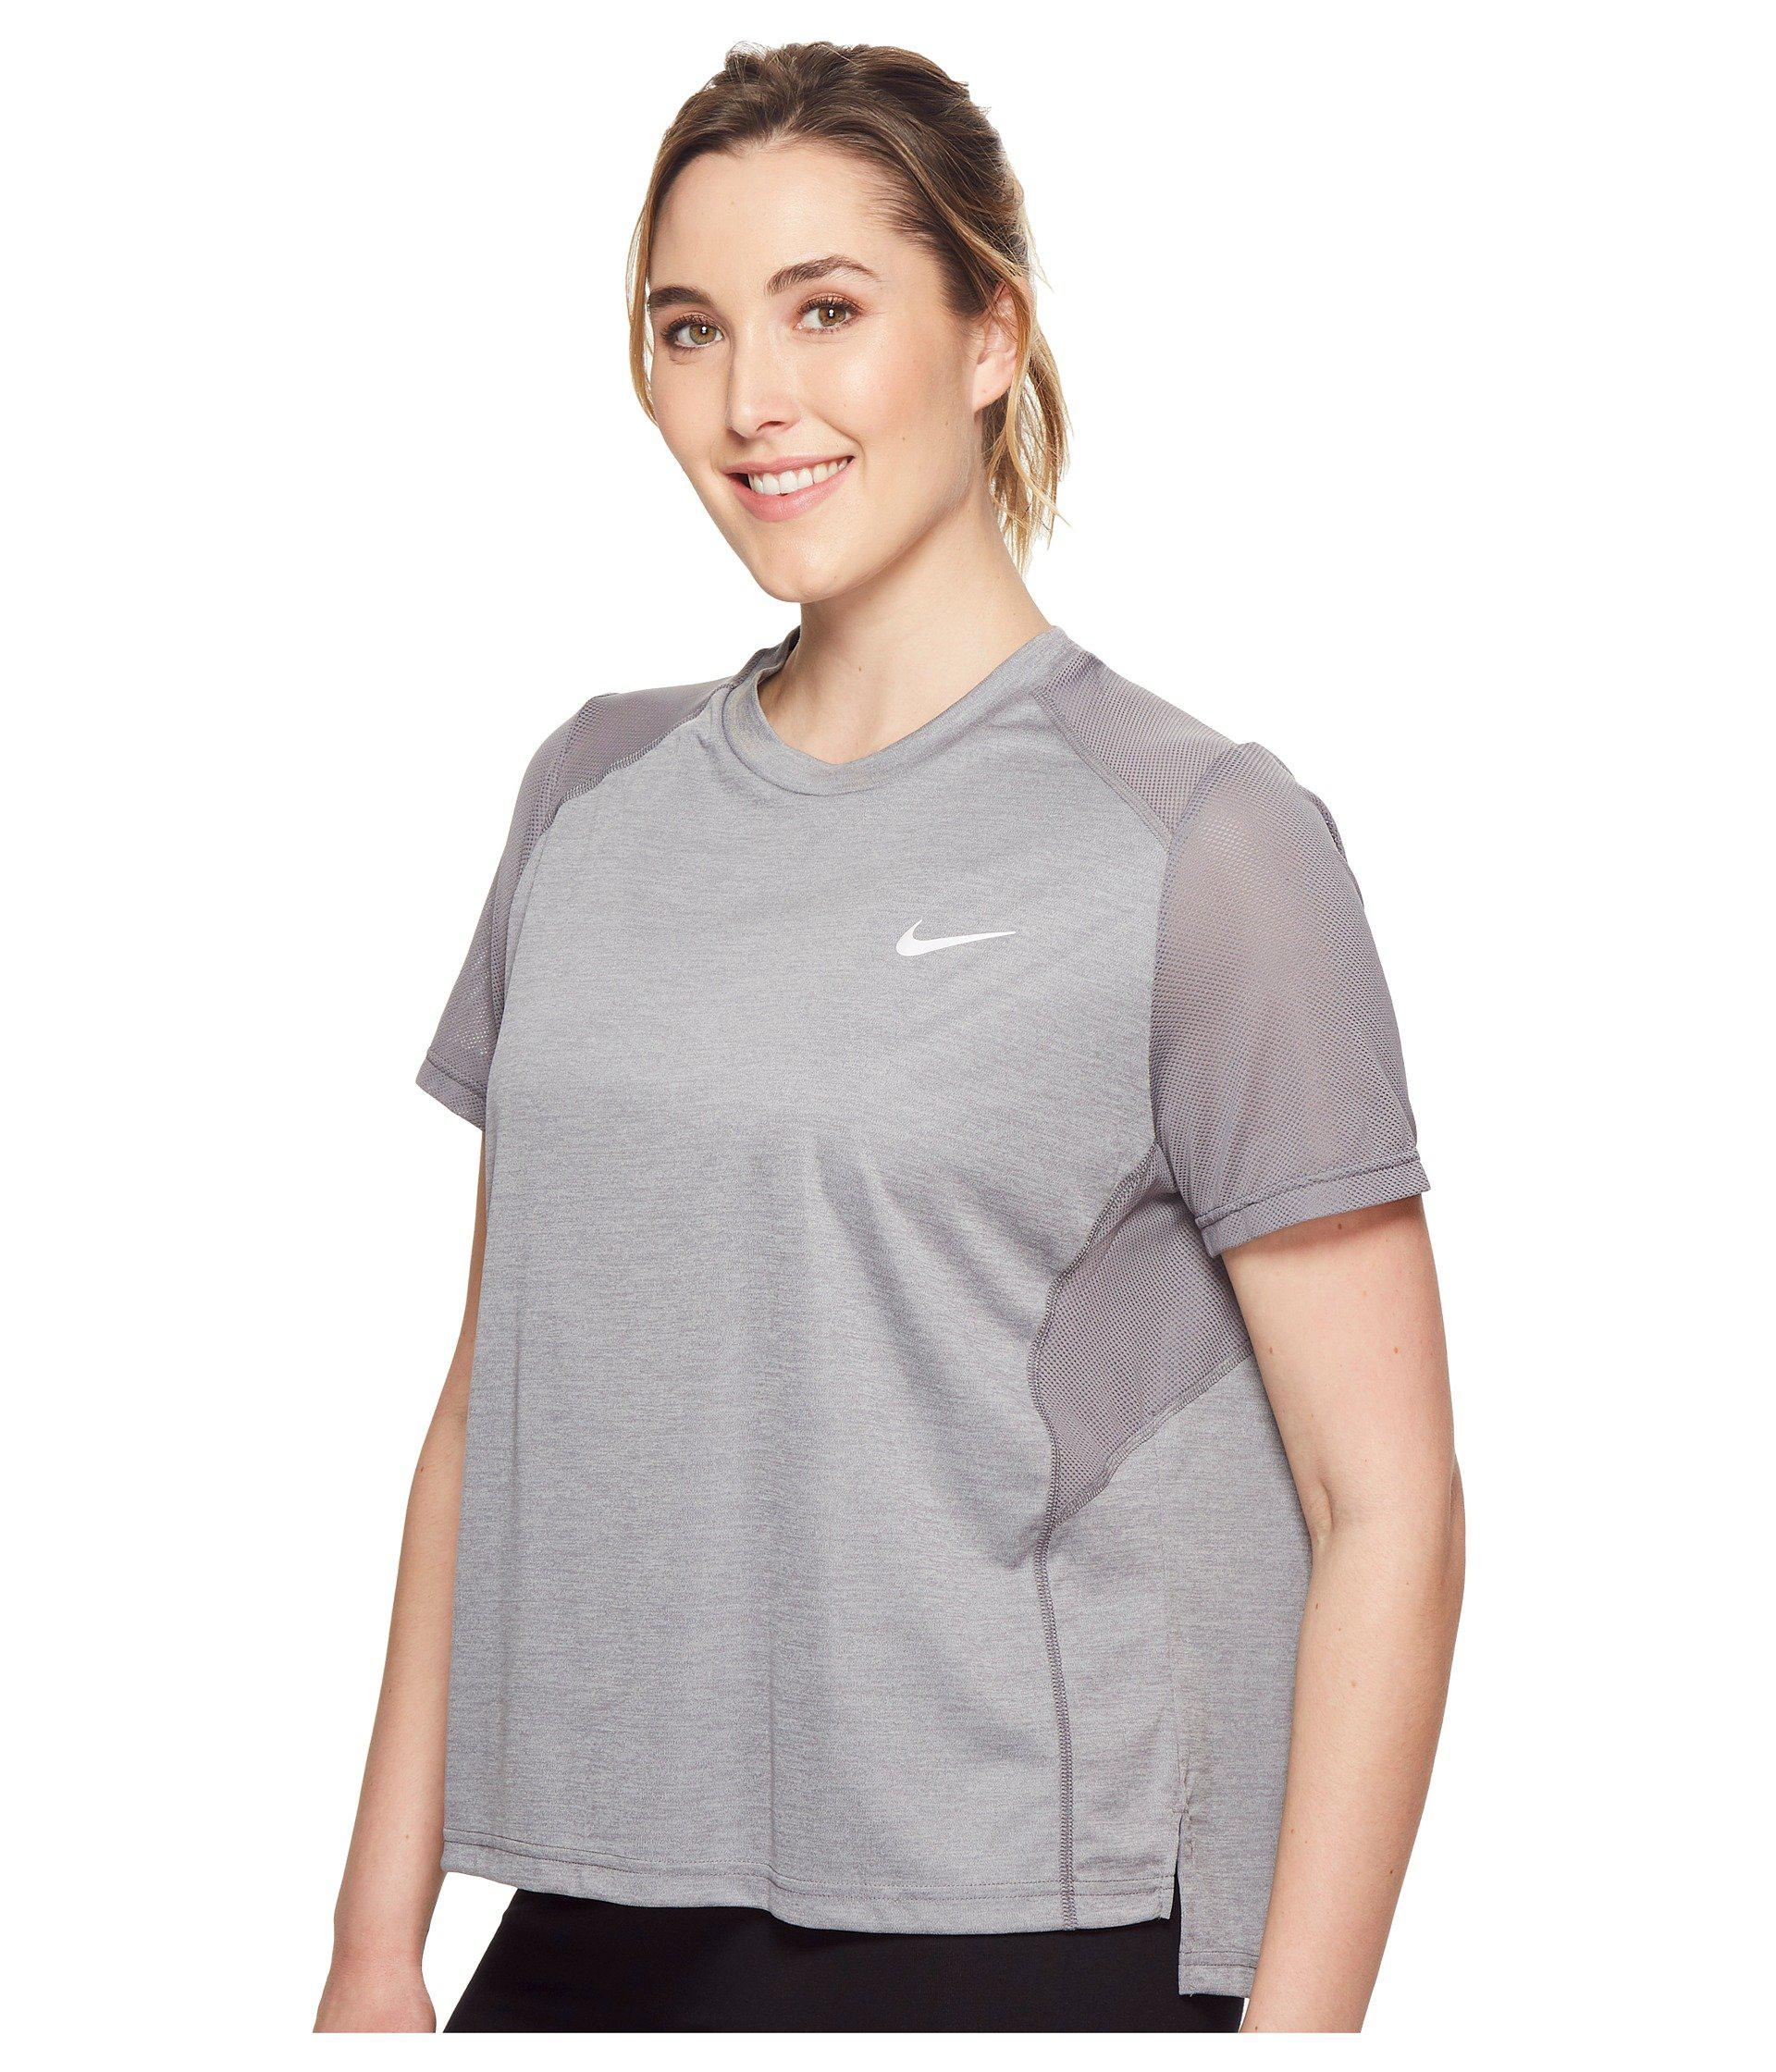 reputable site 7ca4f 65739 Lyst - Nike Dry Miler Short-sleeve Running Top (sizes 1x-3x) in Gray - Save  35%